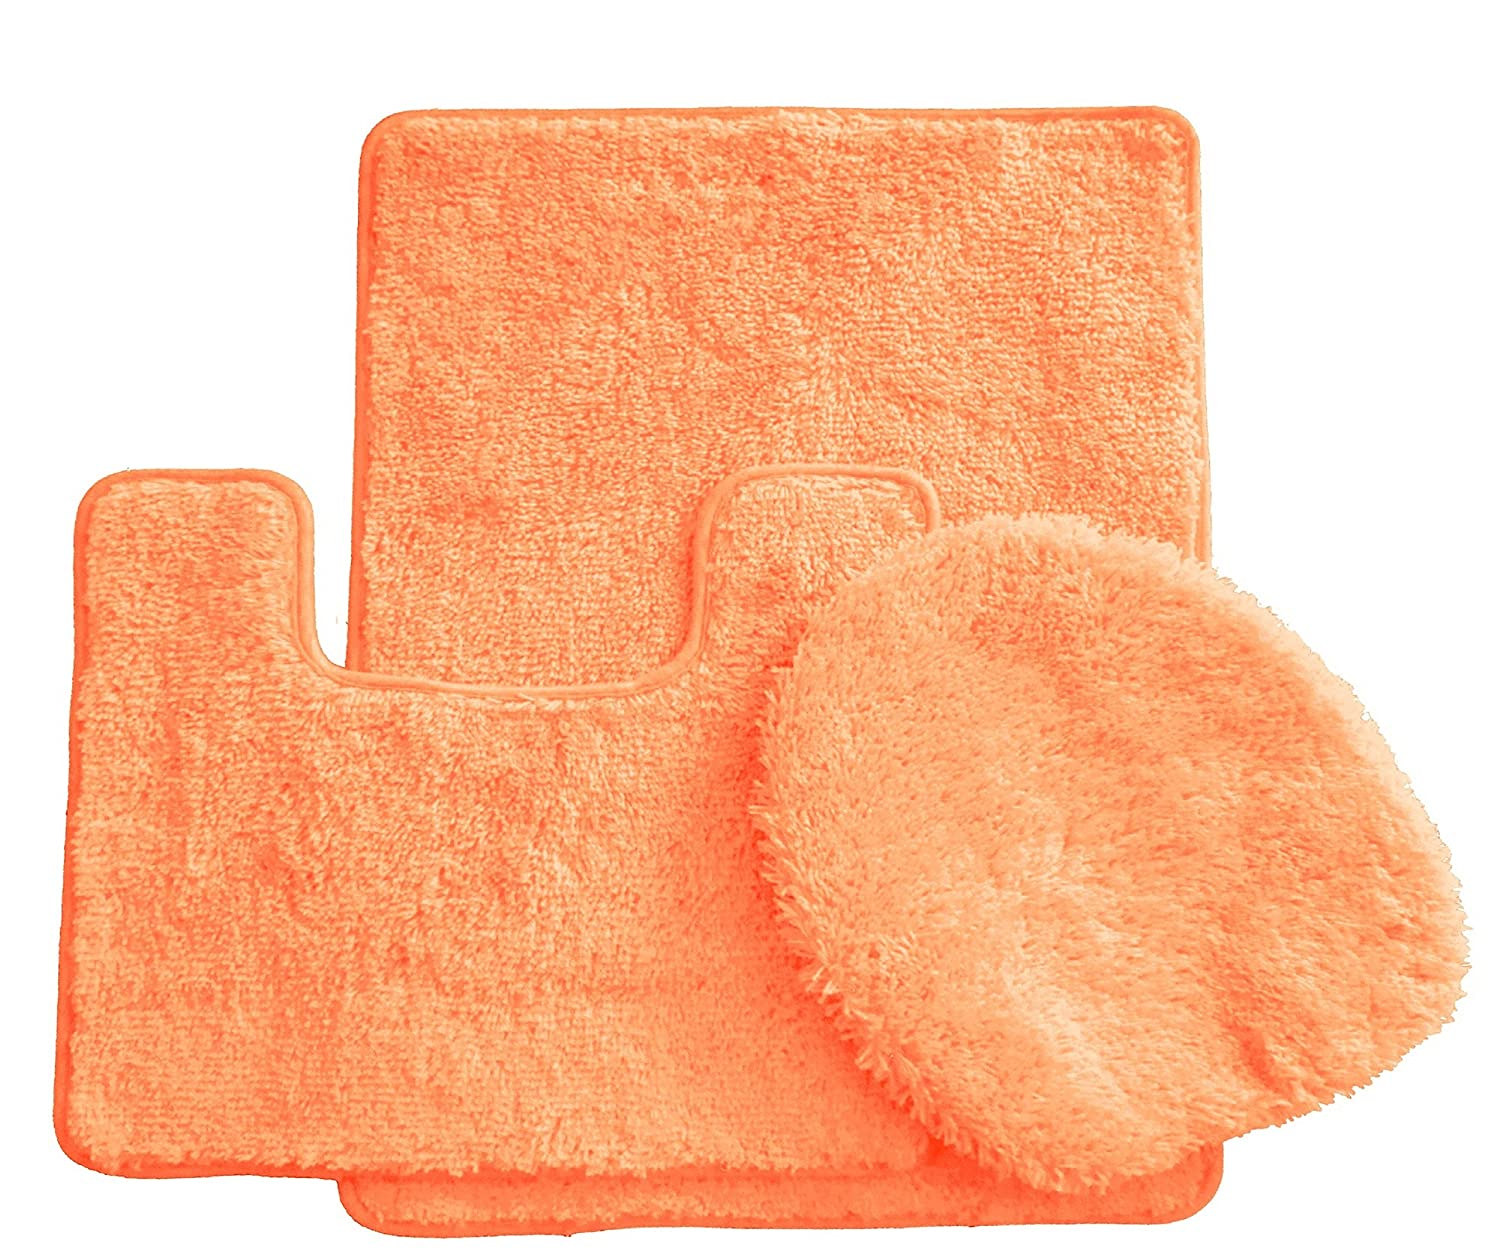 3 piece luxury acrylic bath rugs set large 18 x 30 contour for Peach bathroom set